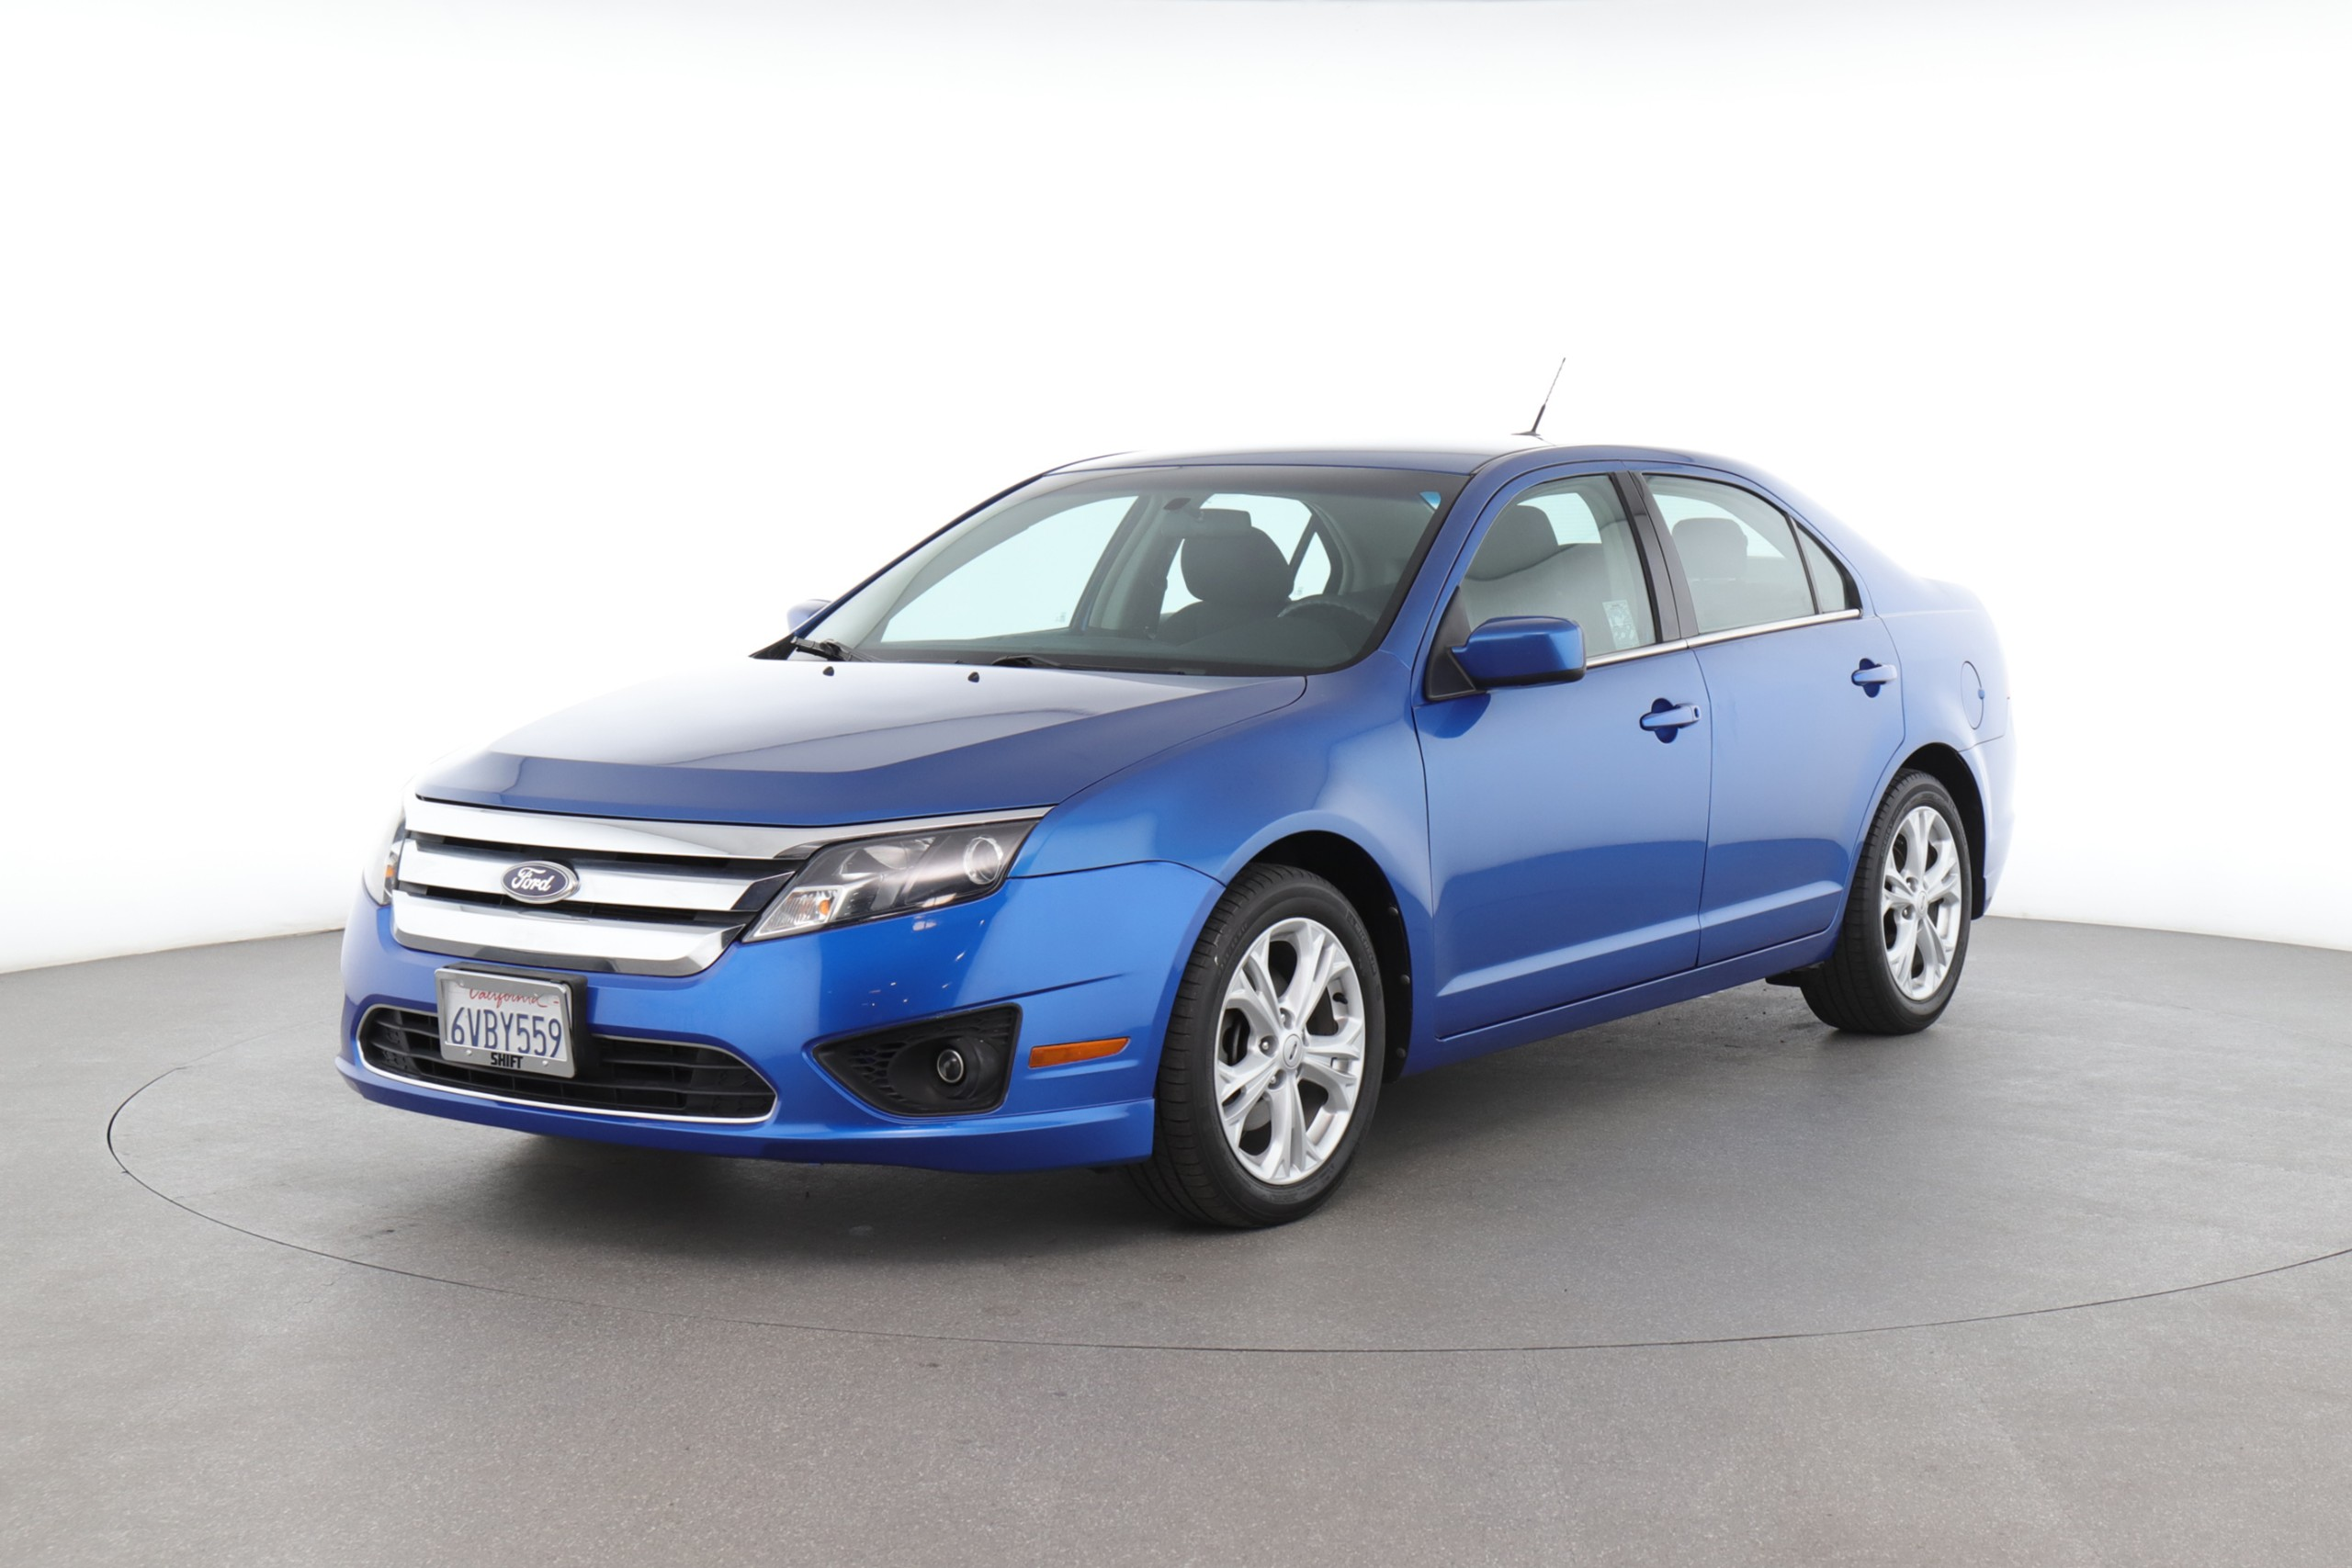 Interested in a Ford Fusion? Here's our Review